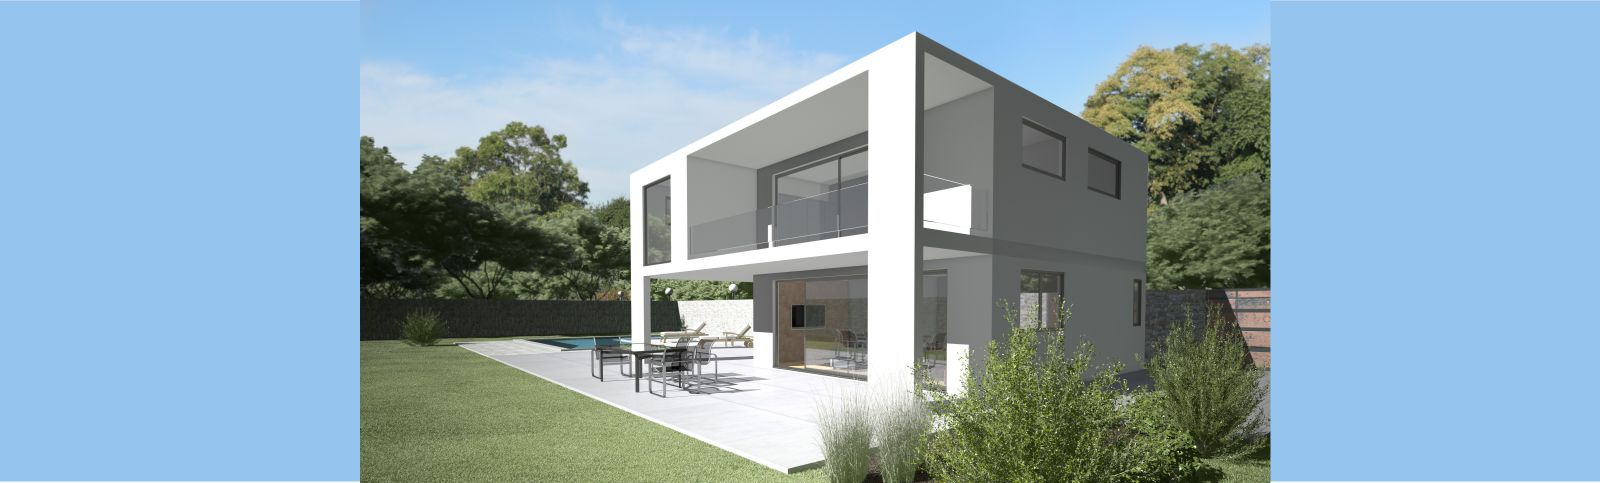 Inmobiliaria Teo. Homes for sale and rental in Valdepeñas